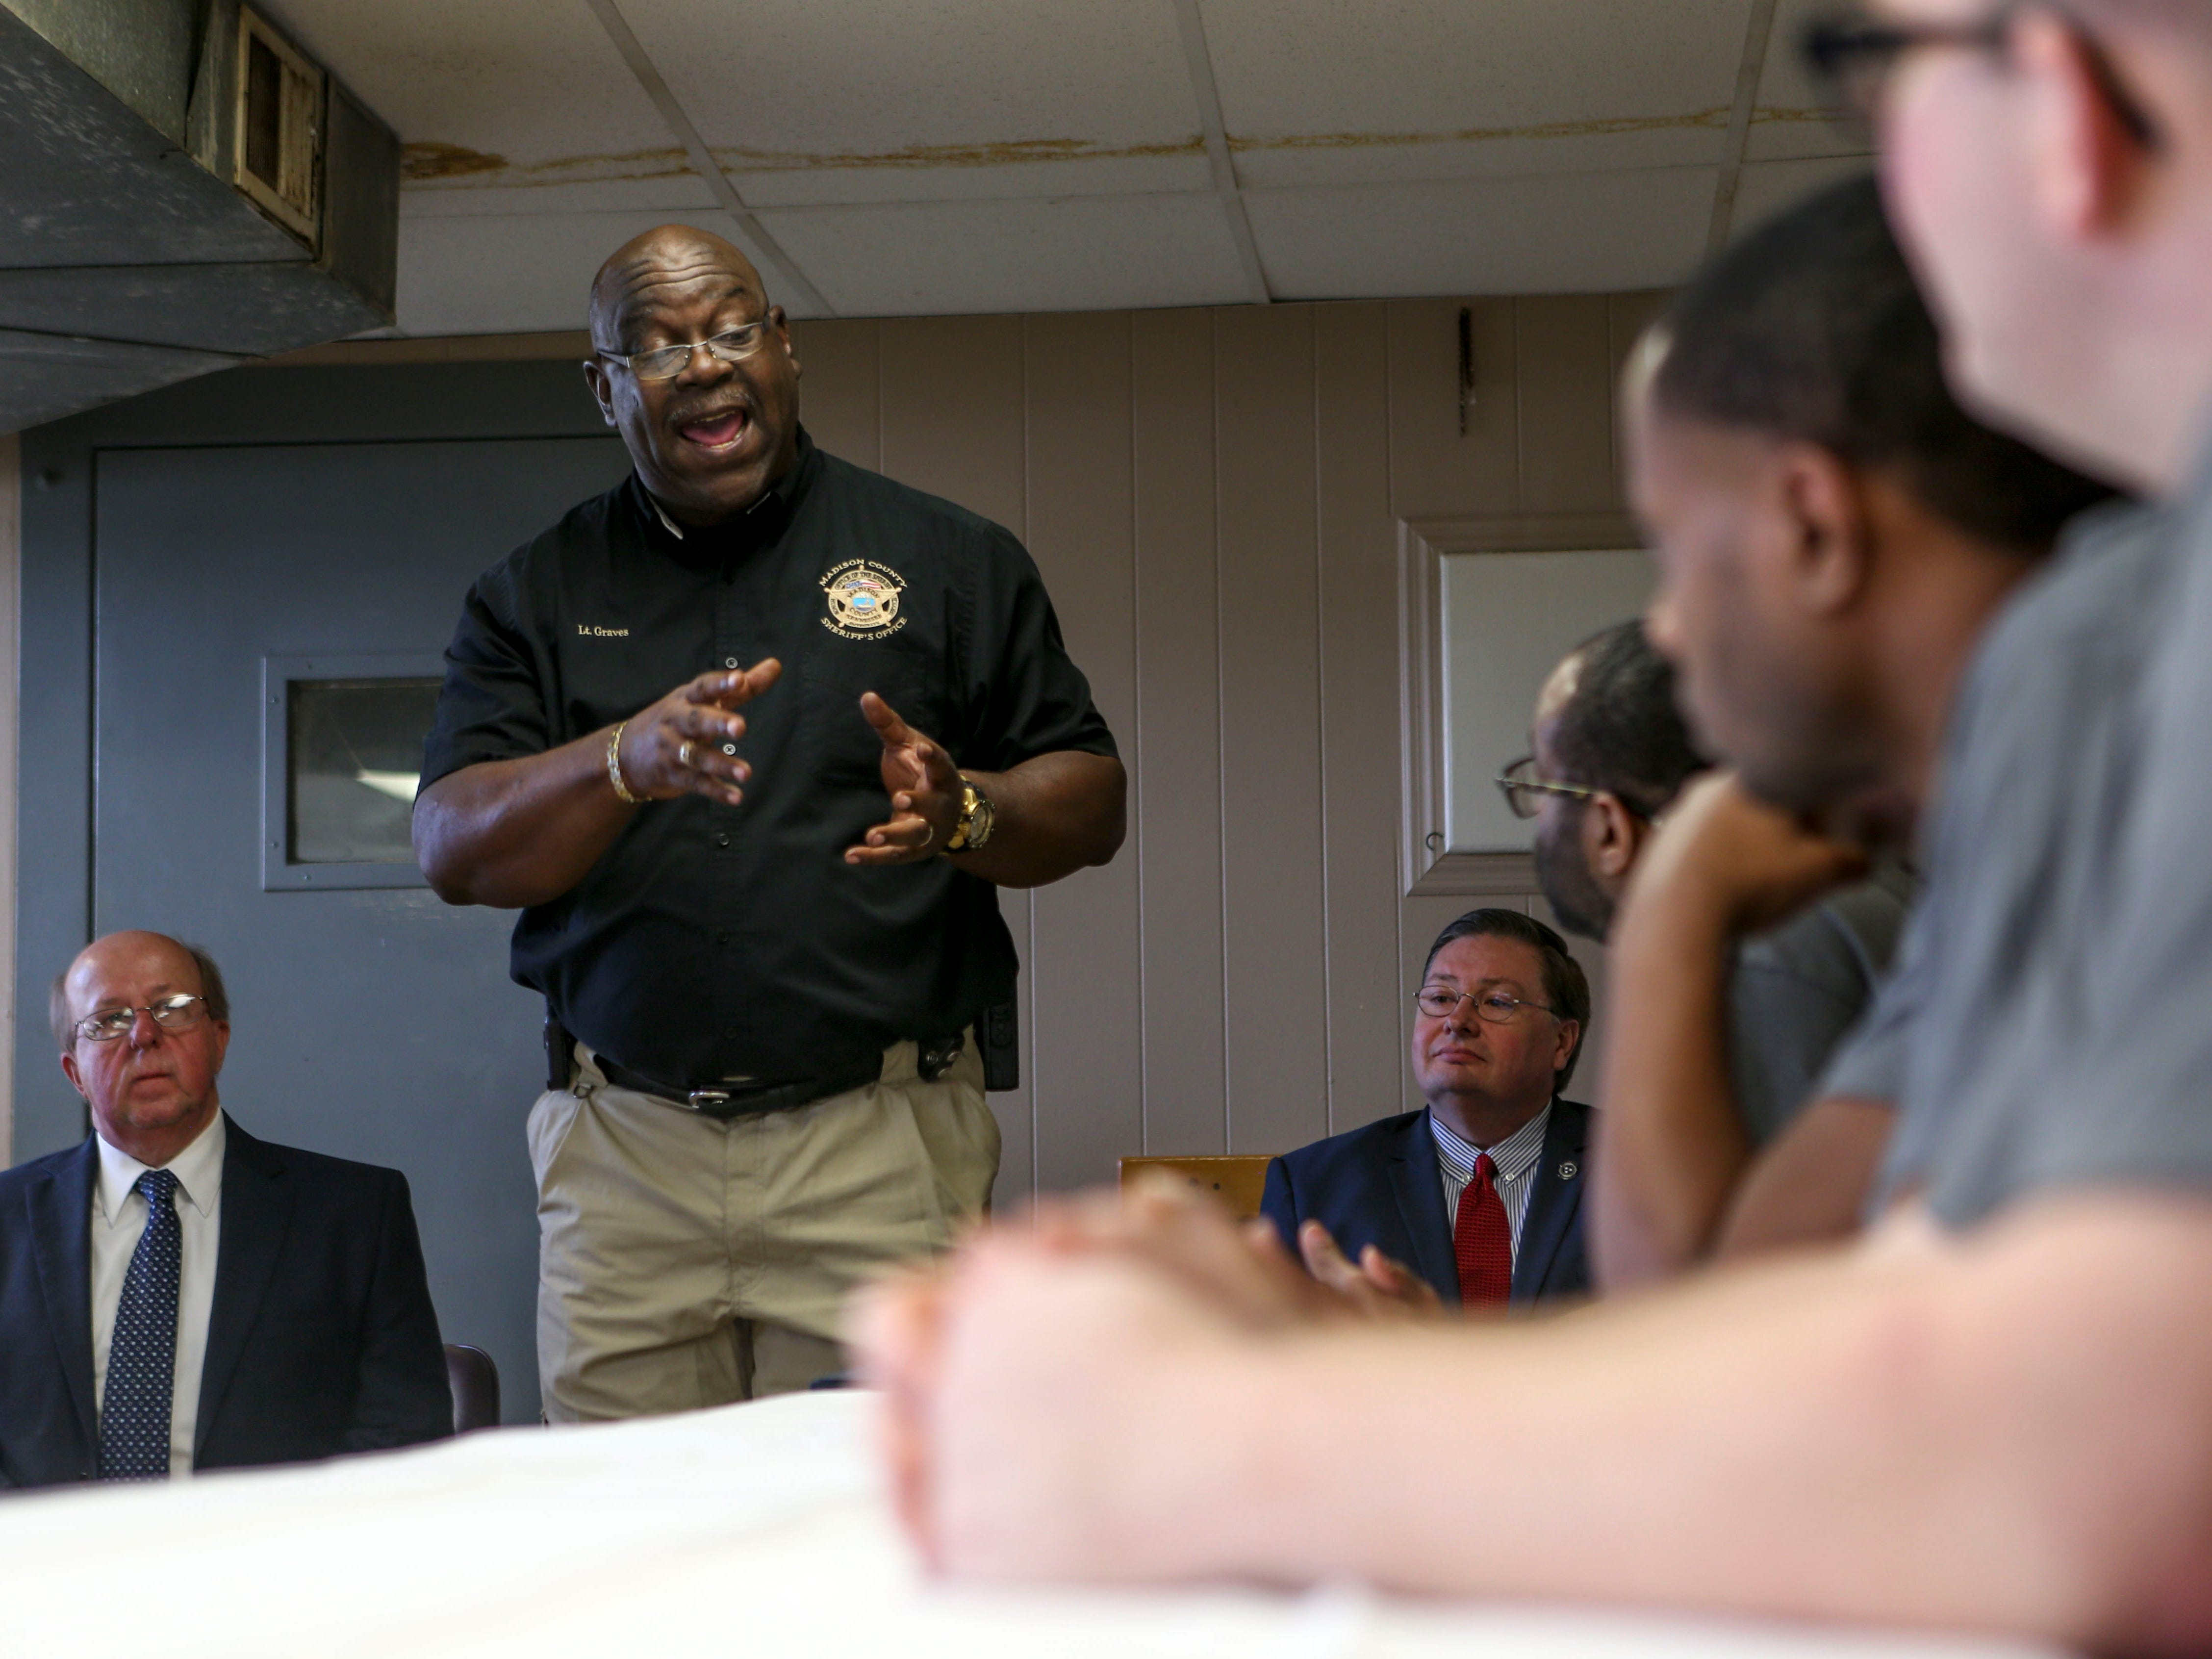 Madison County Lt. Graves talks to graduates during a graduation ceremony for the InsideOut Dad program at Madison County Penal Farm in Jackson, Tenn., on Thursday, Oct. 4, 2018.